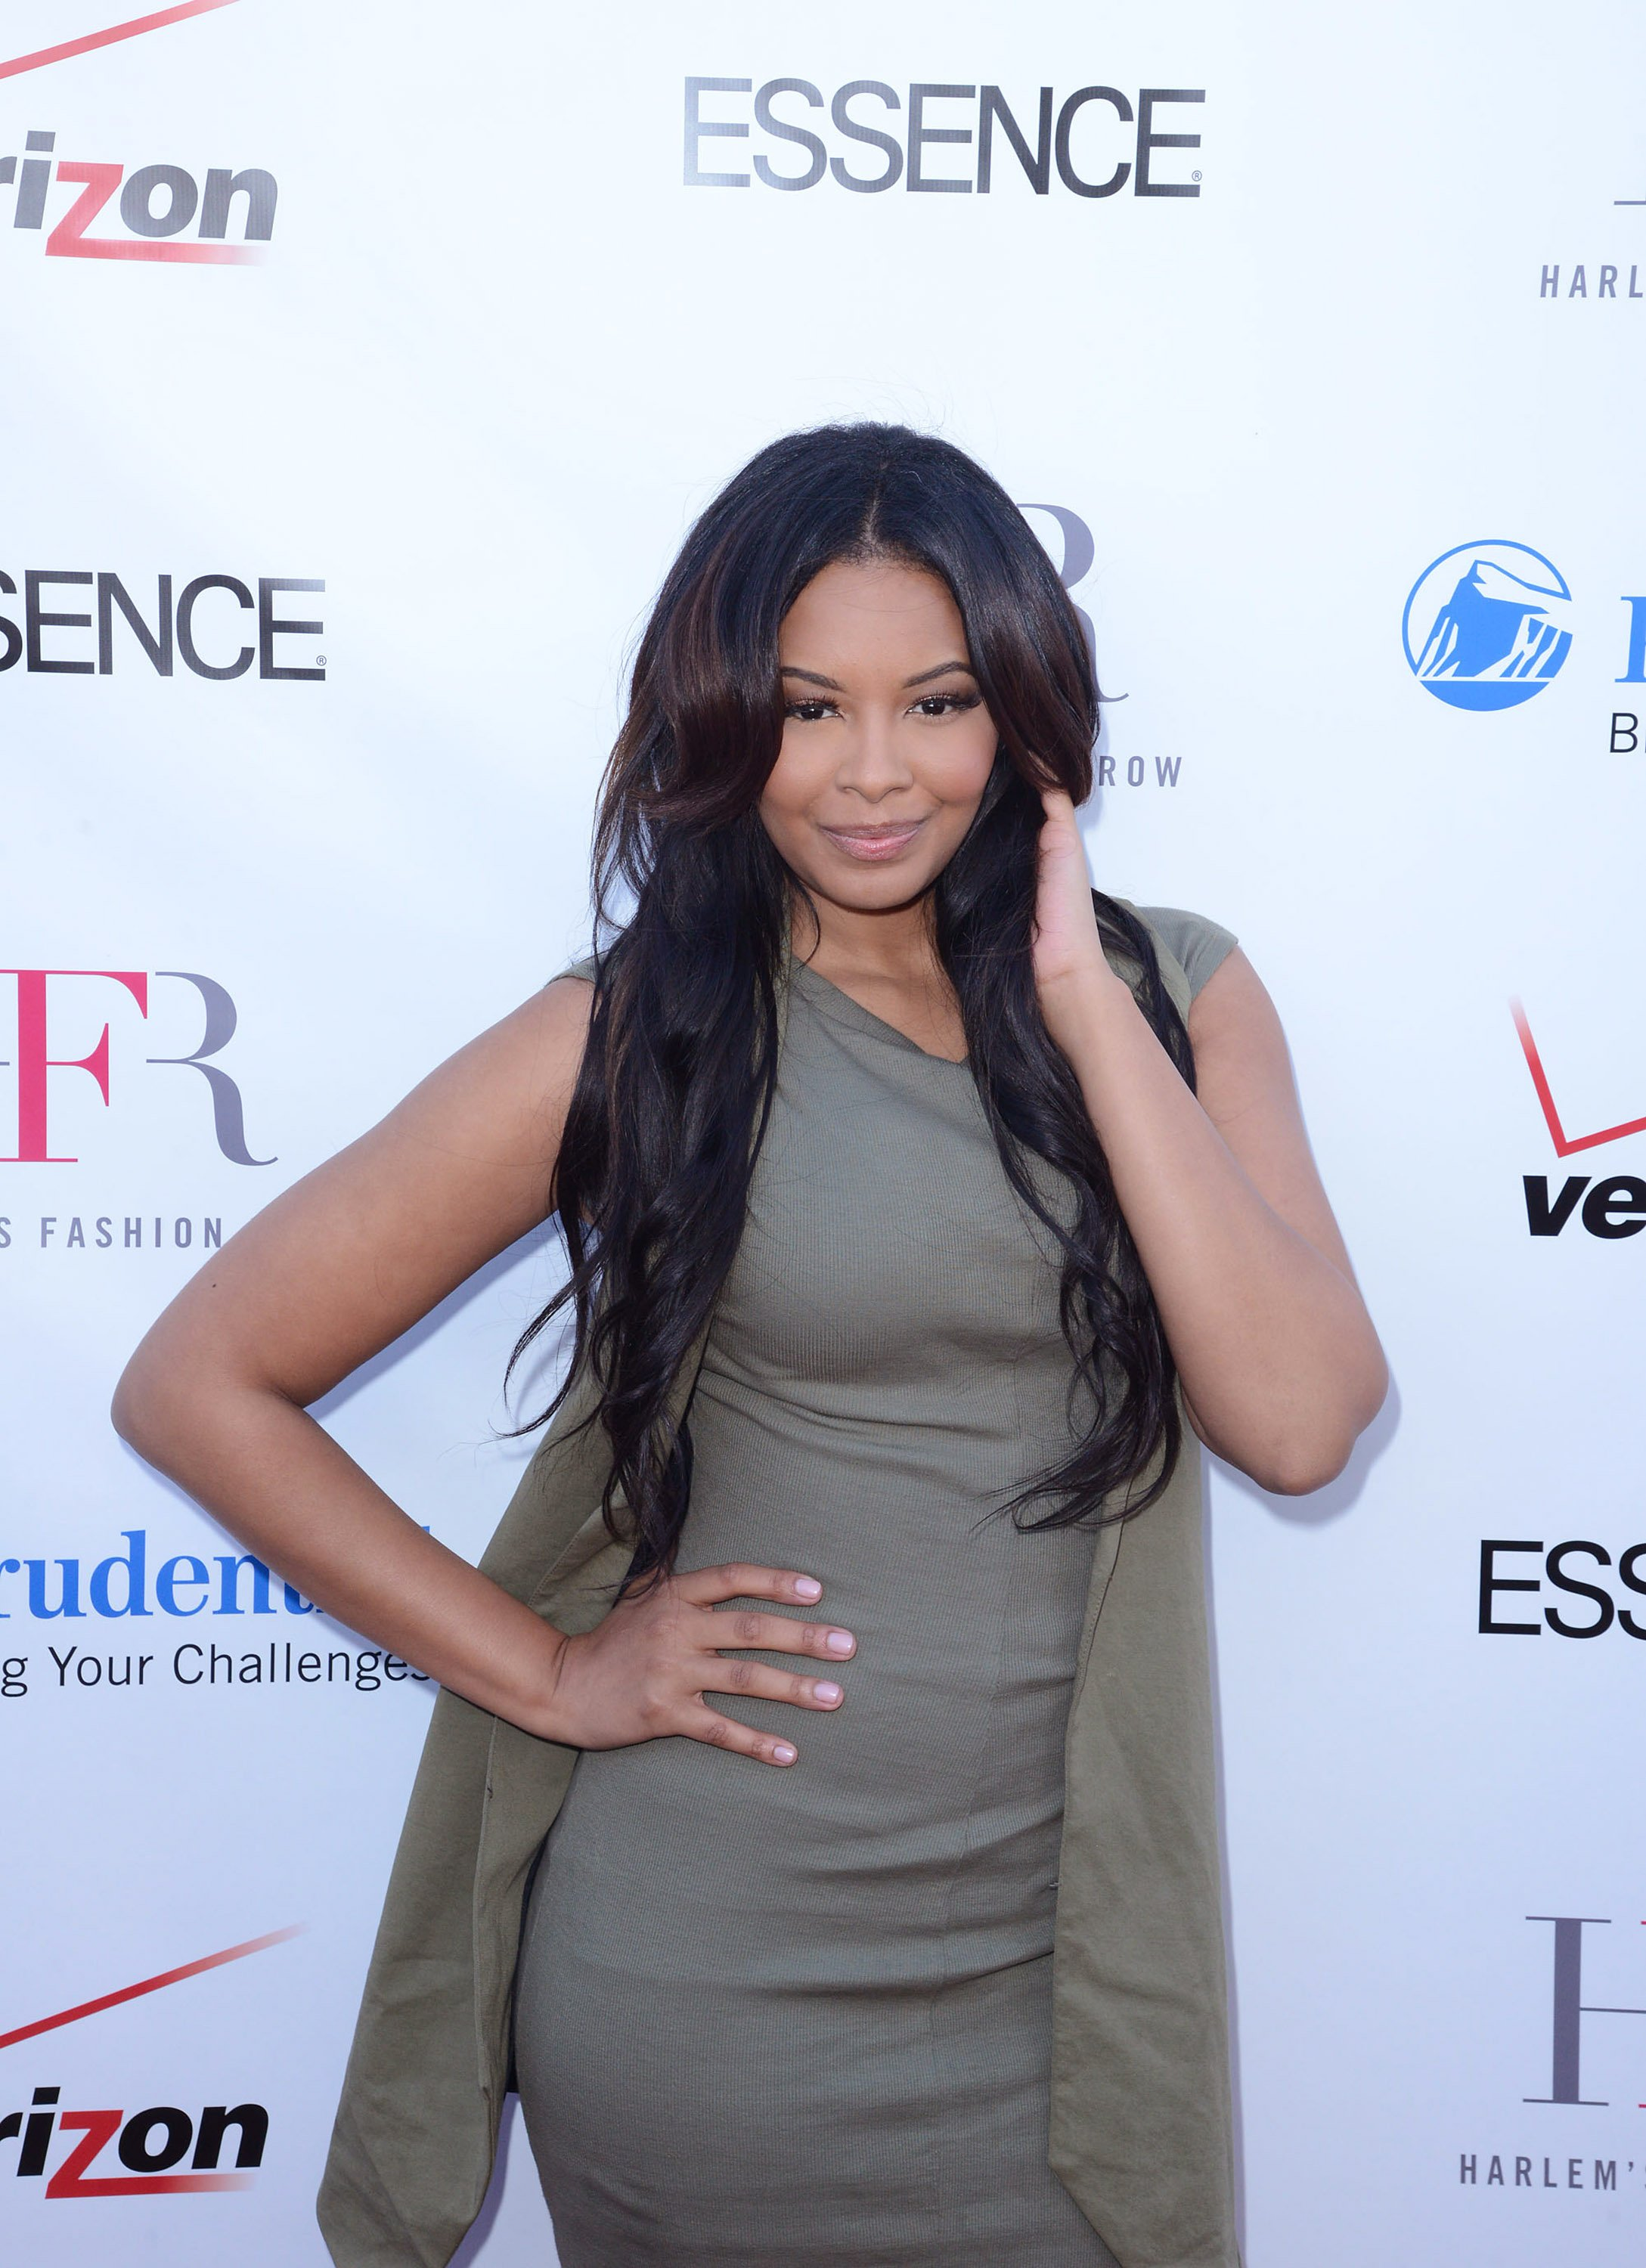 Vanessa Simmons attends Harlem's Fashion Row Style Beat In LA on February 6, 2015 in Los Angeles, California.   Source: Getty Images